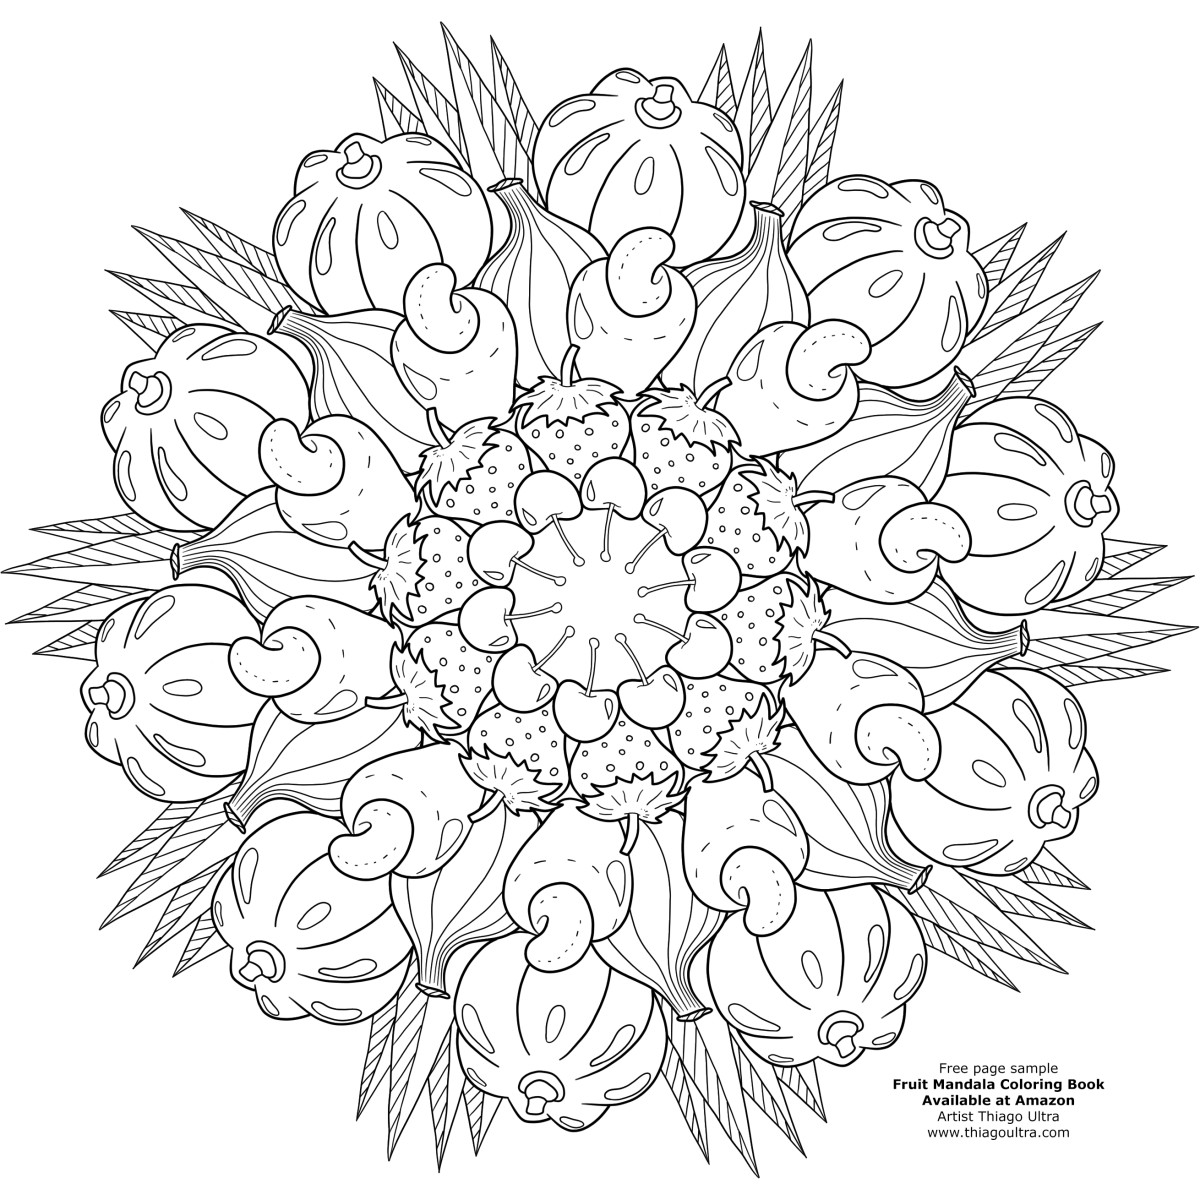 Best ideas about Fruit Coloring Pages For Adults . Save or Pin Video Sneak Peek A Closer Look At Fruit Mandalas – Adult Now.